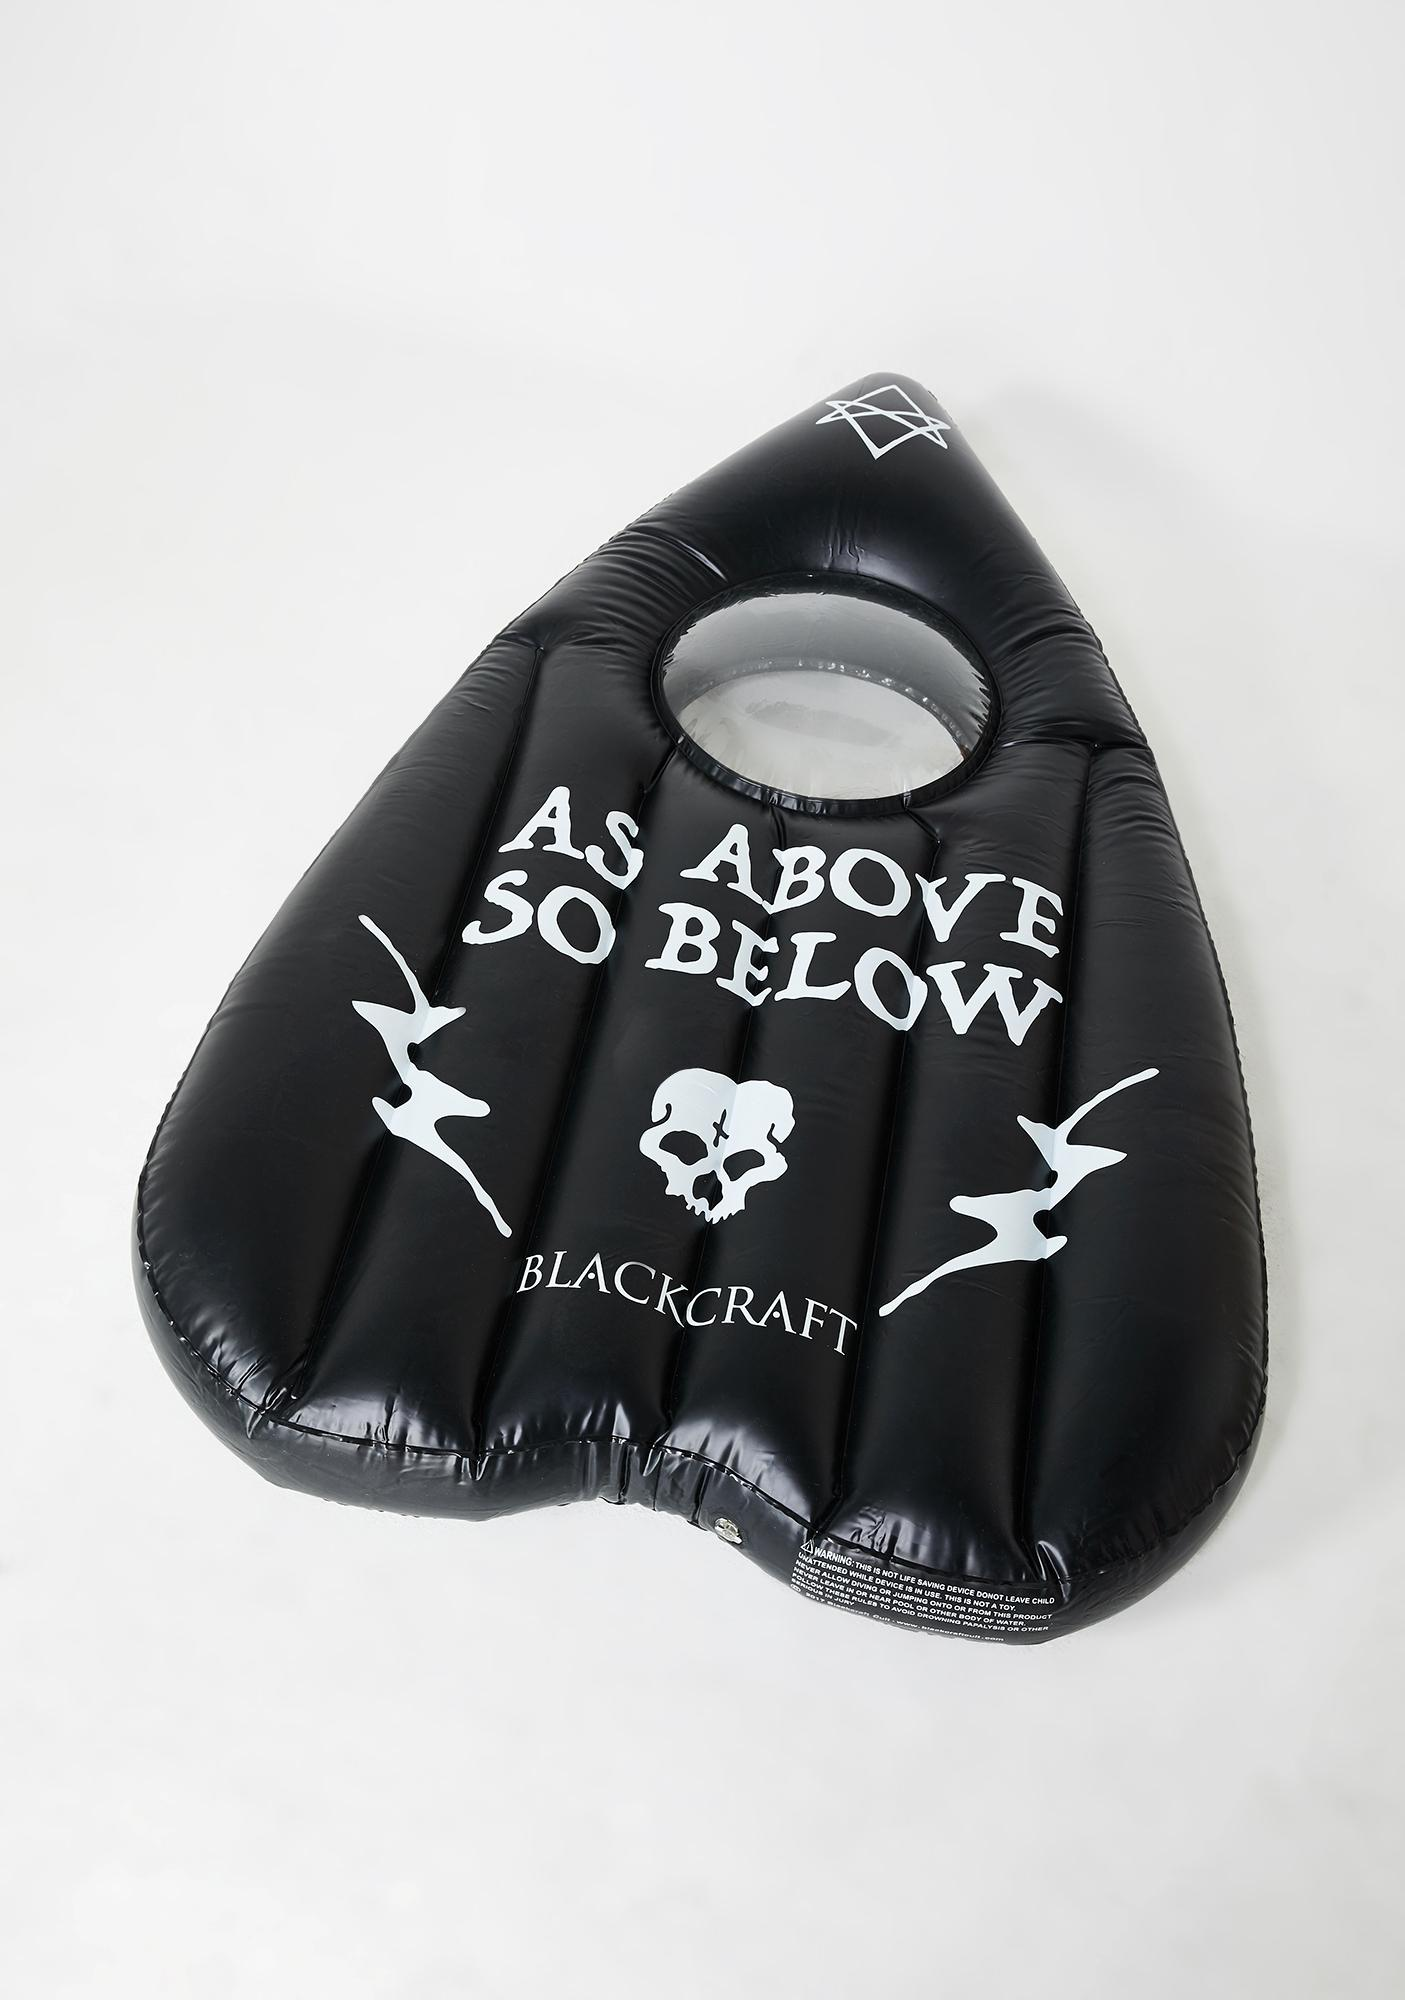 Blackcraft Planchette Pool Float